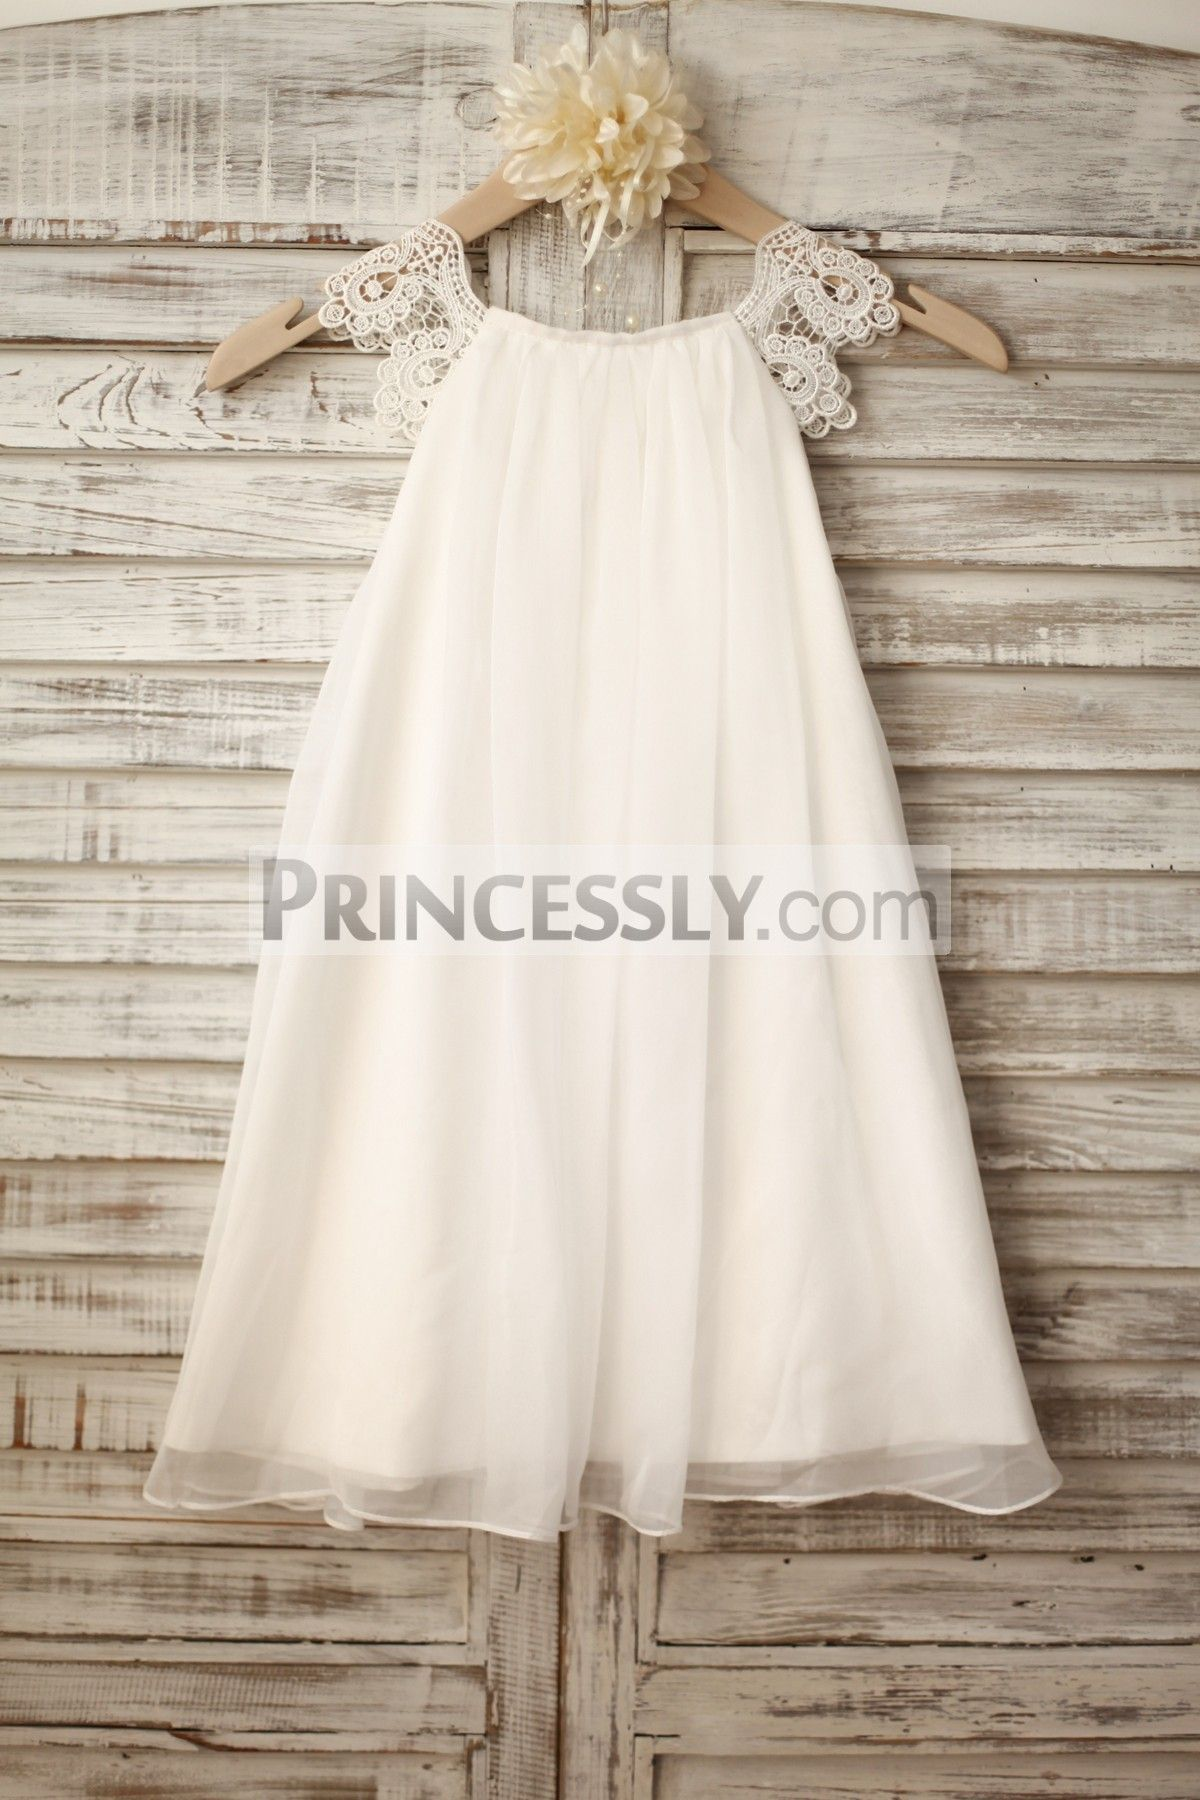 Beach wedding flower girl dresses  Lace Cap Sleeves Boho Beach Ivory Chiffon Flower Girl Dress